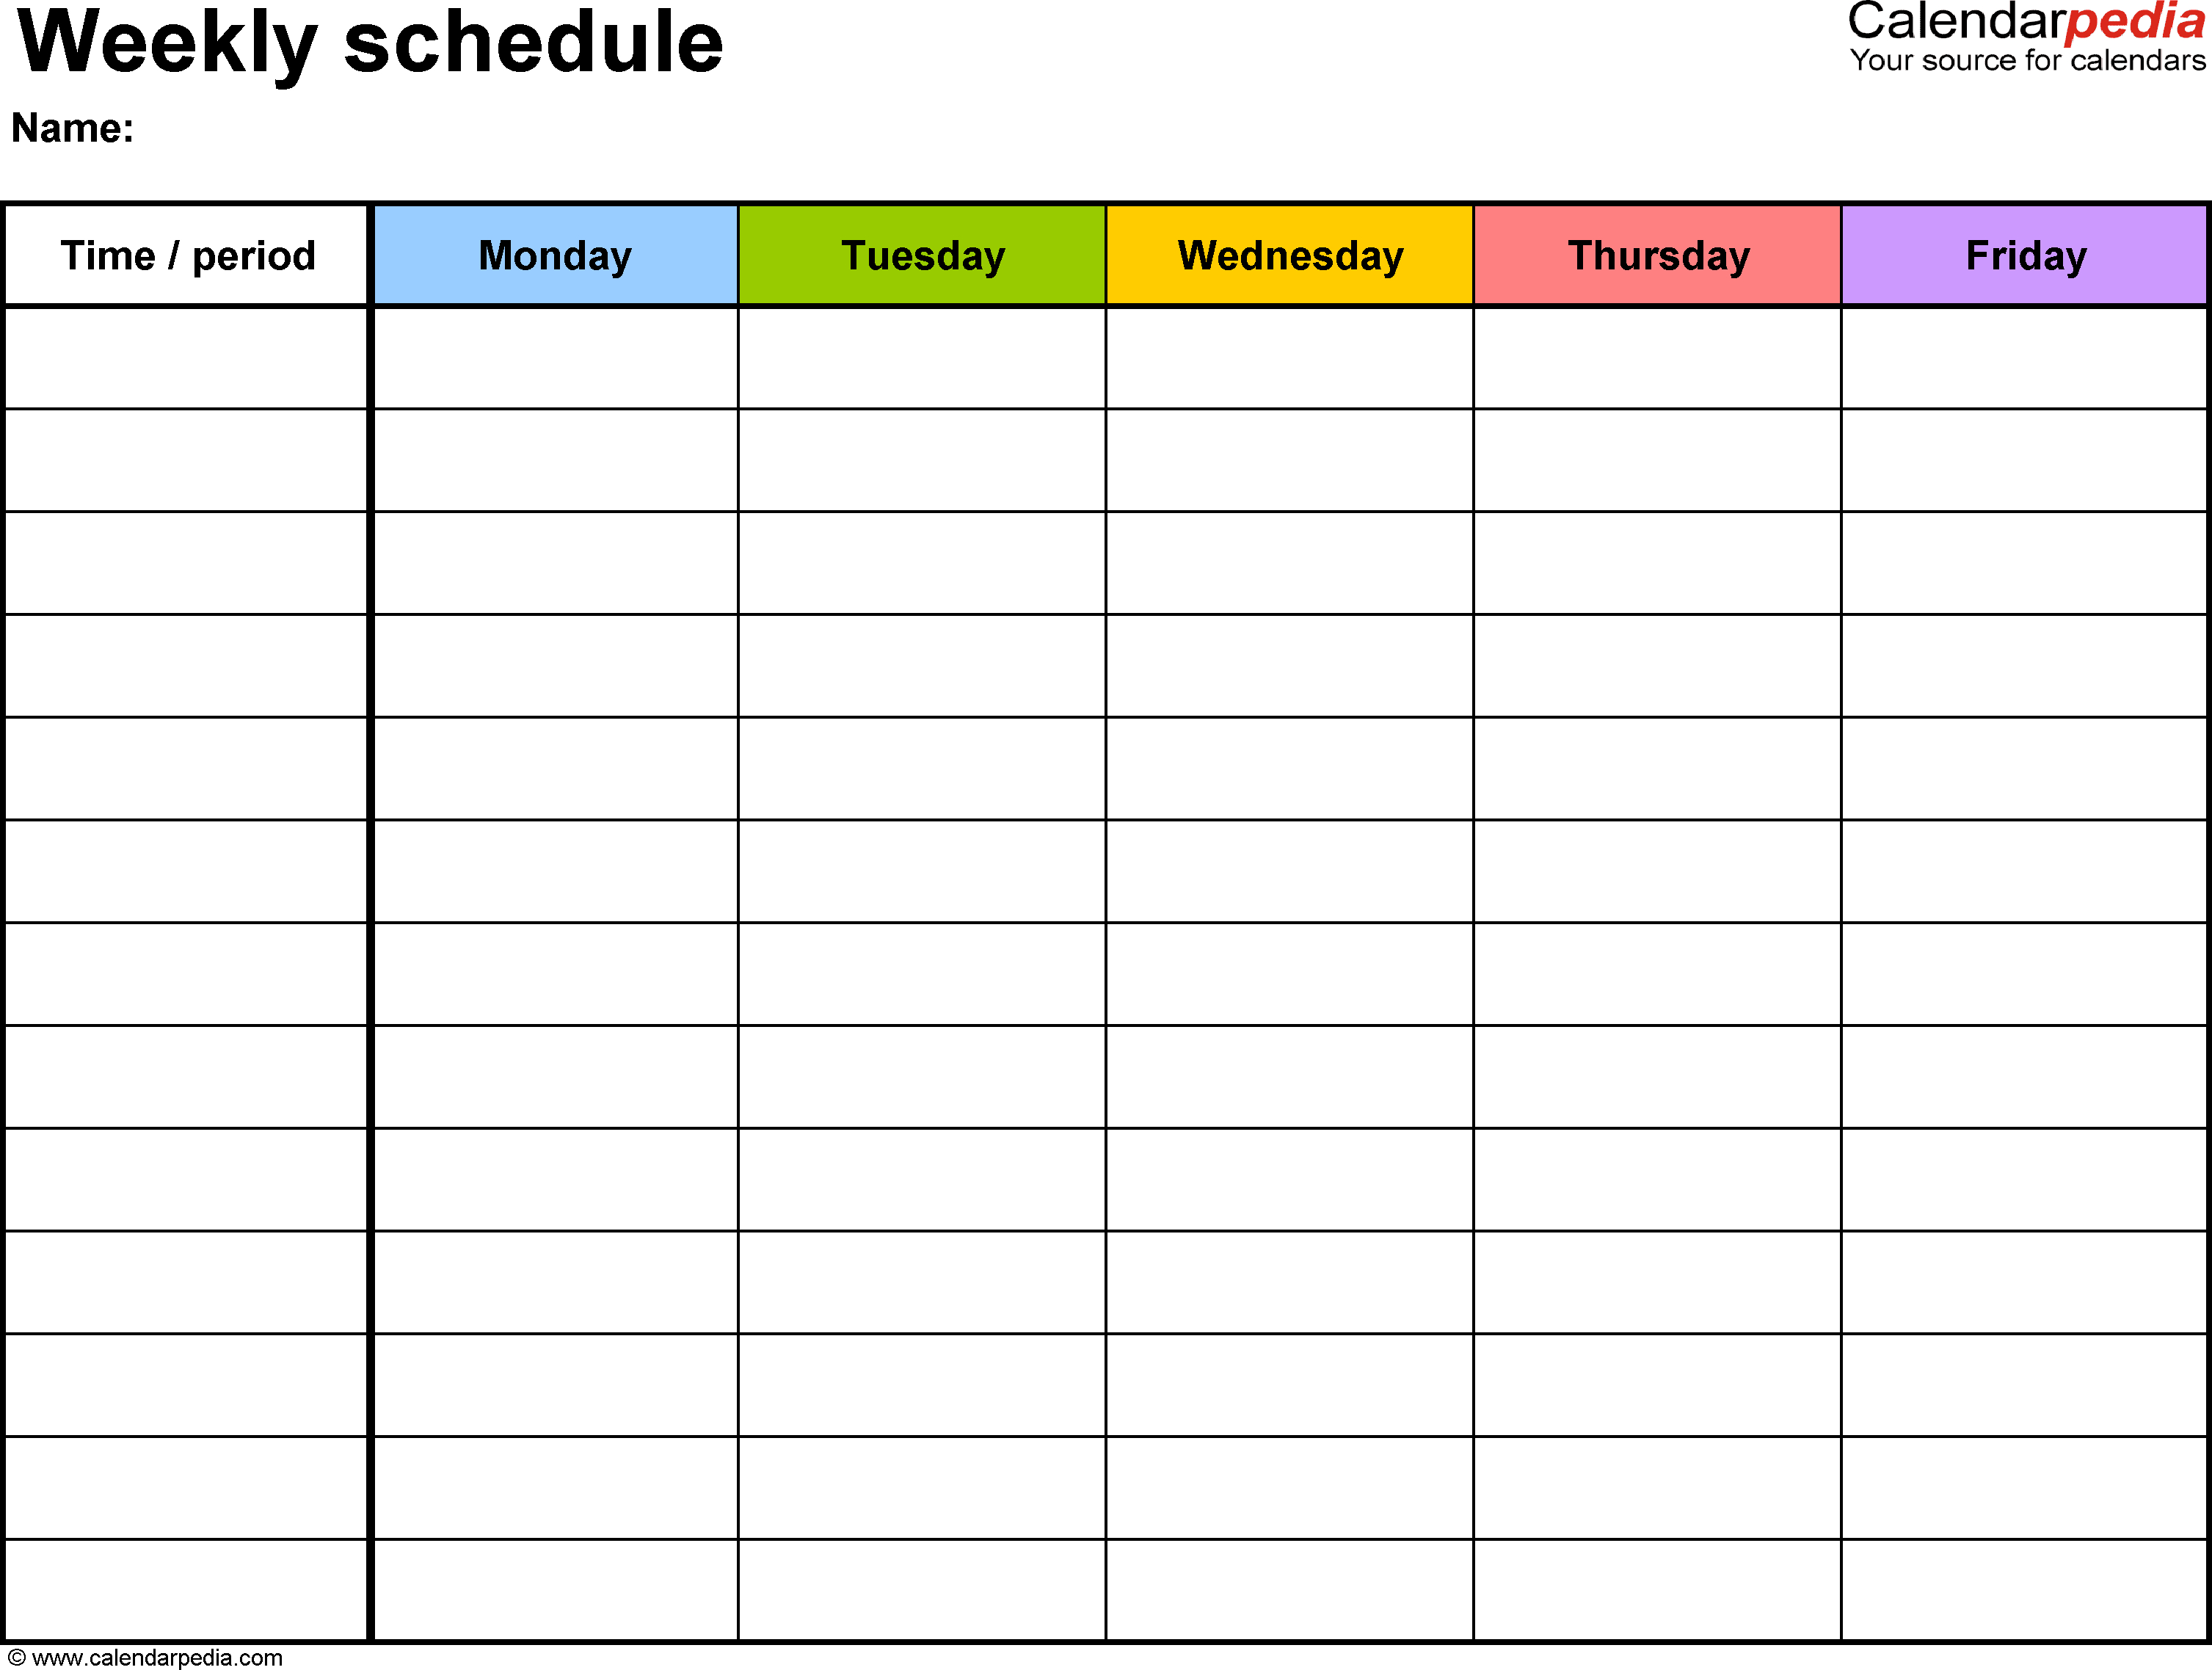 Free Weekly Schedule Templates For Word - 18 Templates with 5 Day Blank Calendar Template